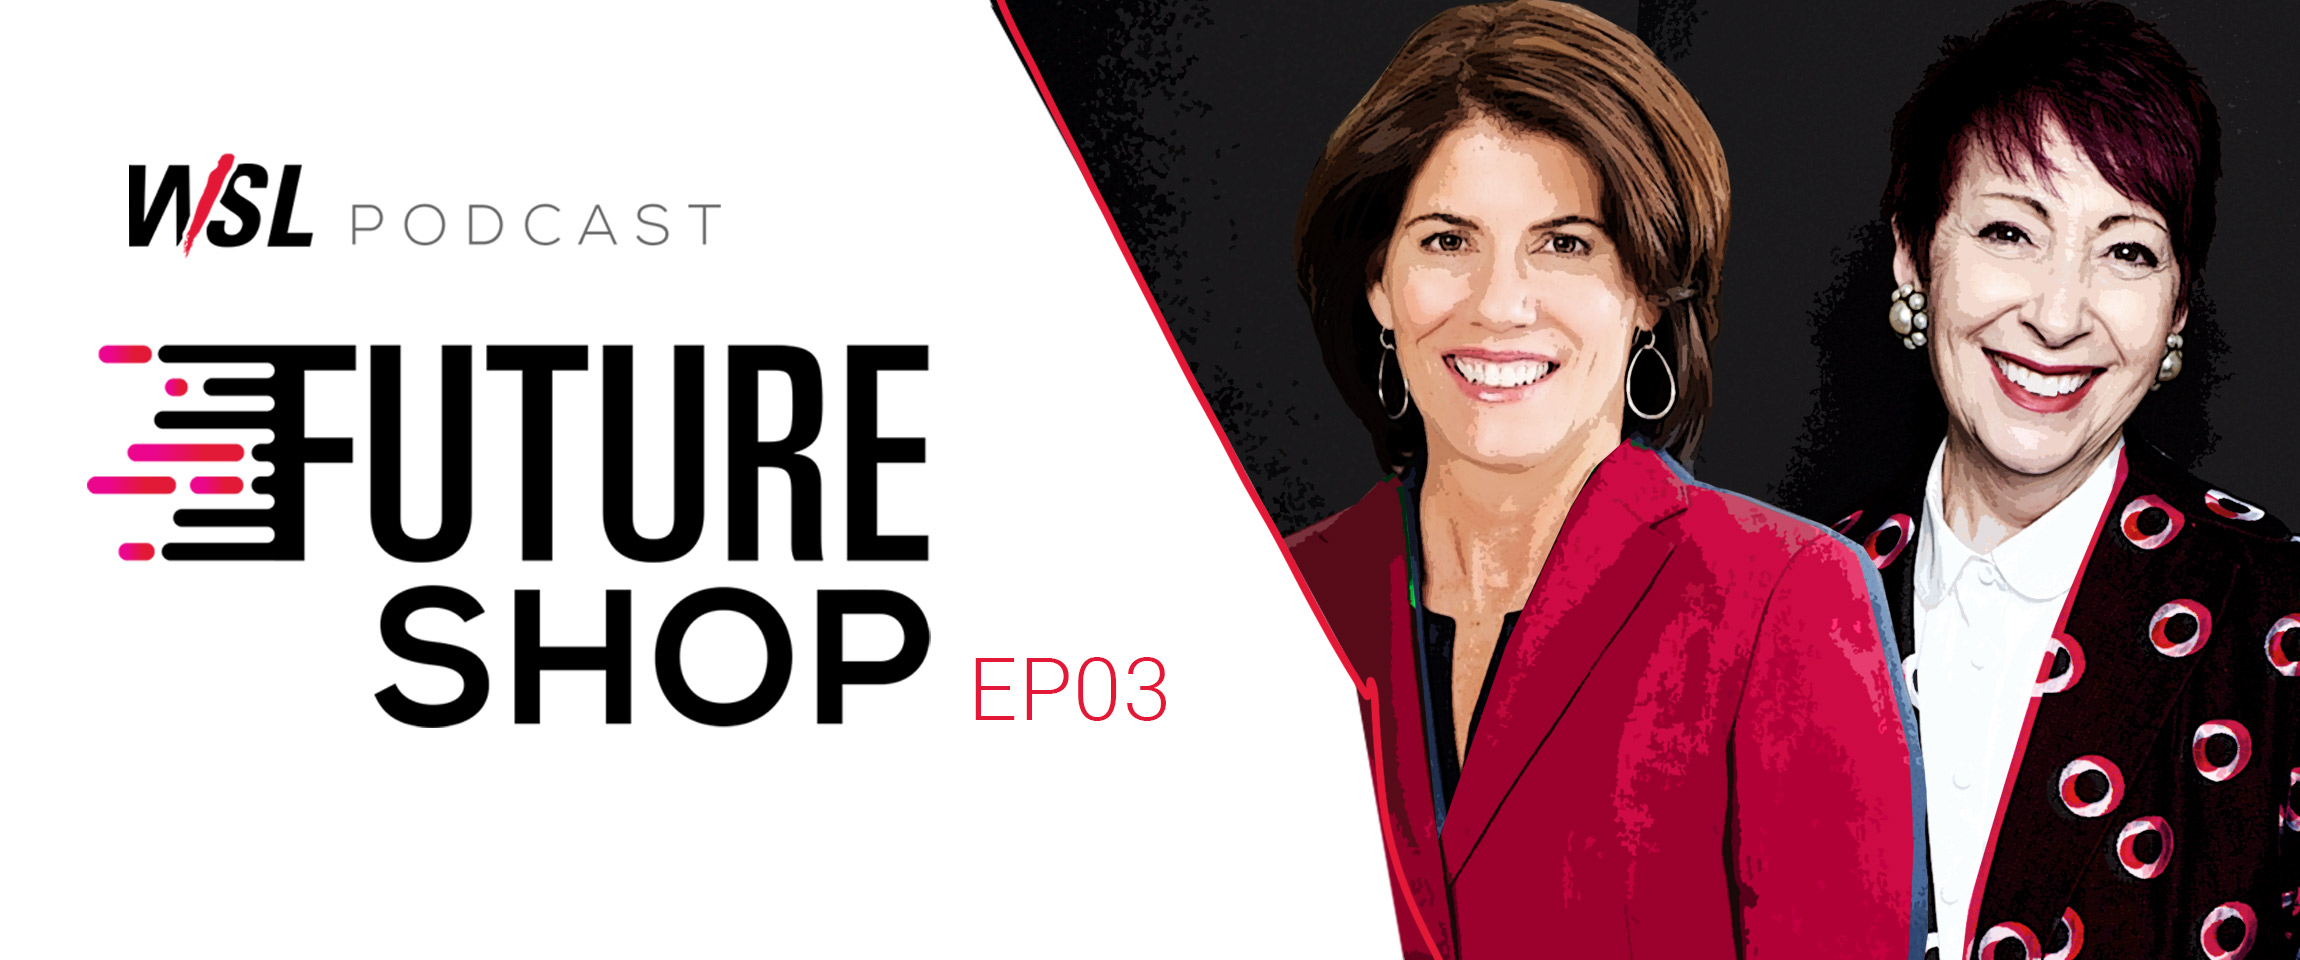 Future Shop Podcast - EP 03: What is the Future of Retail in a COVID-19 World?